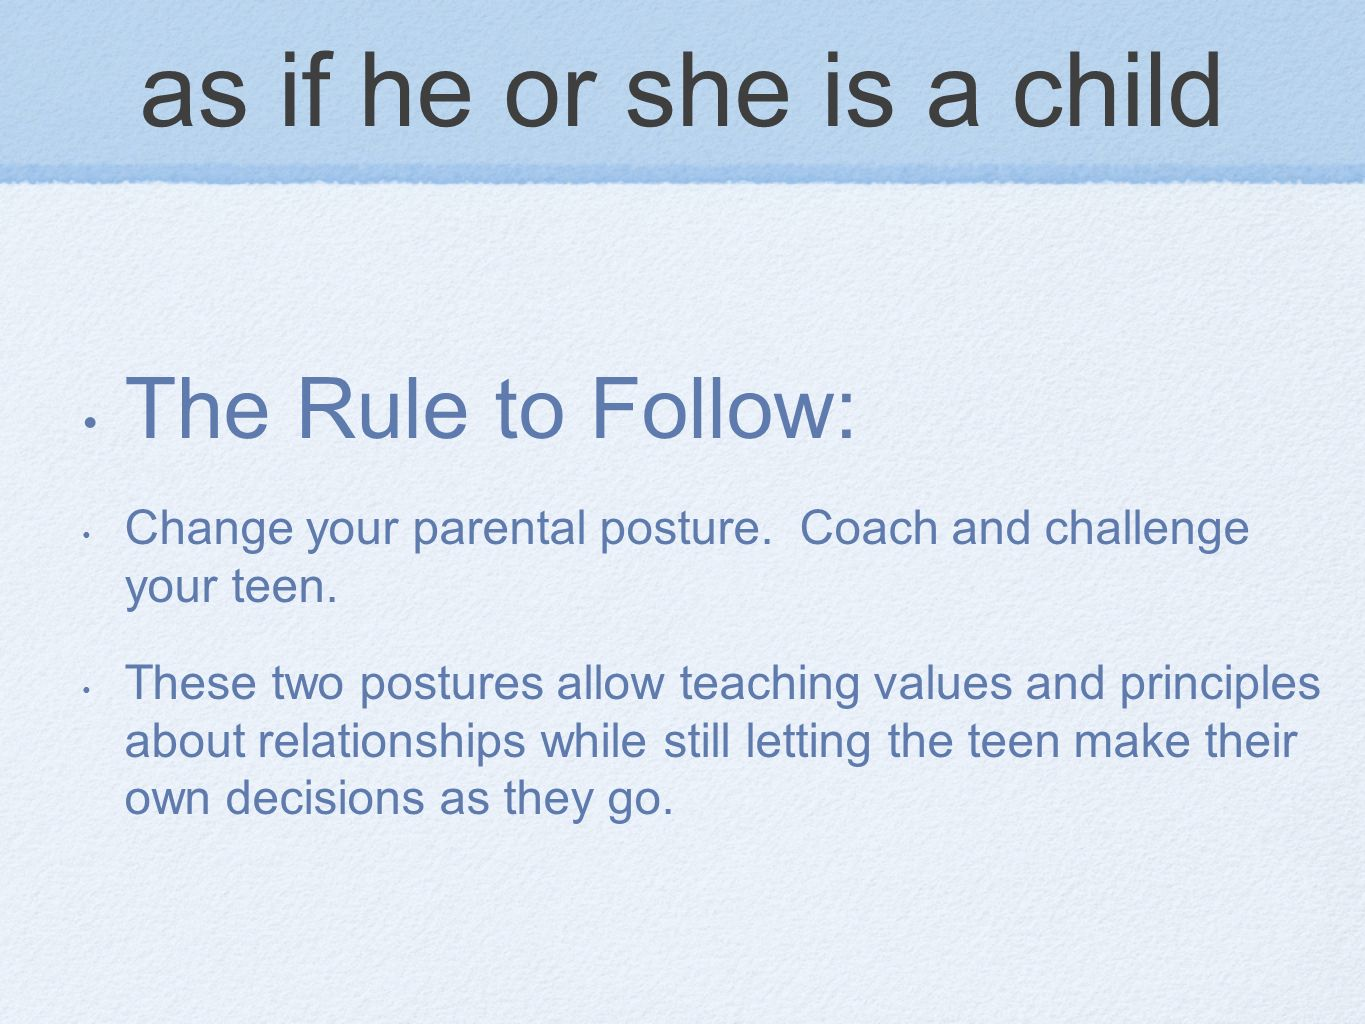 as if he or she is a child The Rule to Follow: Change your parental posture. Coach and challenge your teen. These two postures allow teaching values a